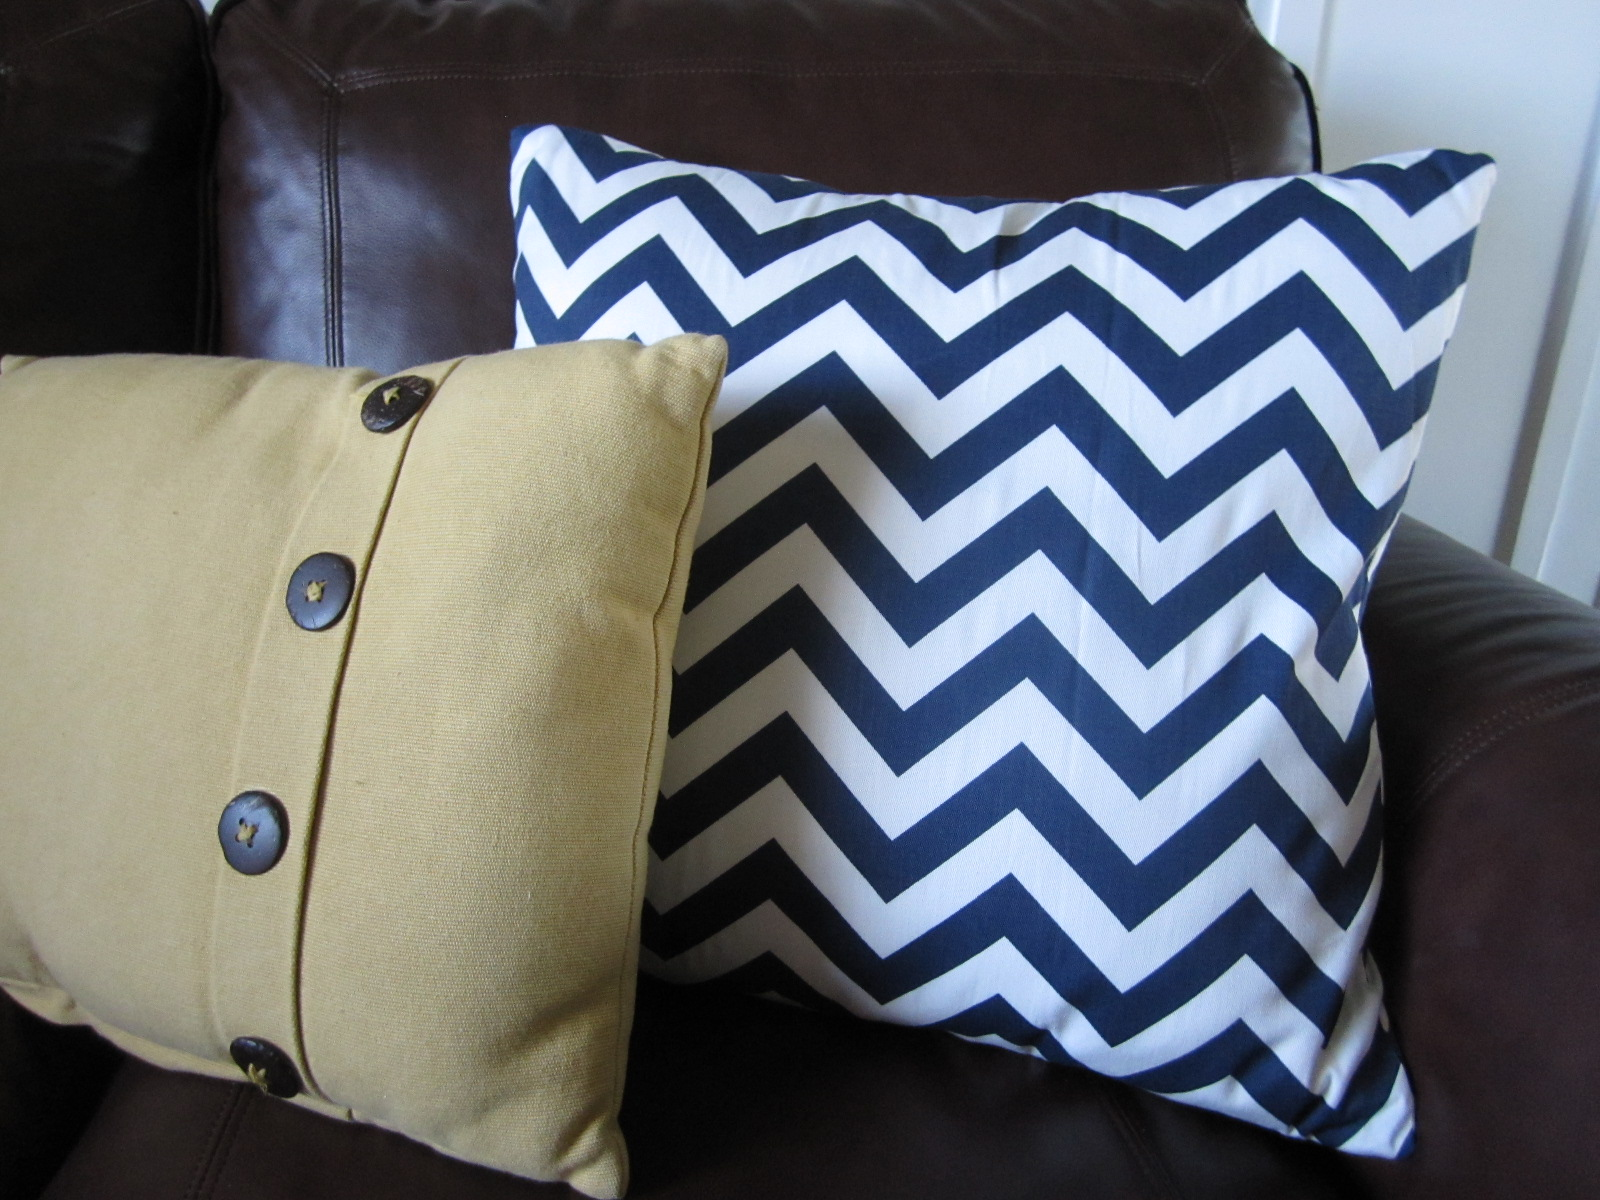 How To Make A Throw Pillow Without Sewing : KrisKraft: Easy DIY Throw Pillows